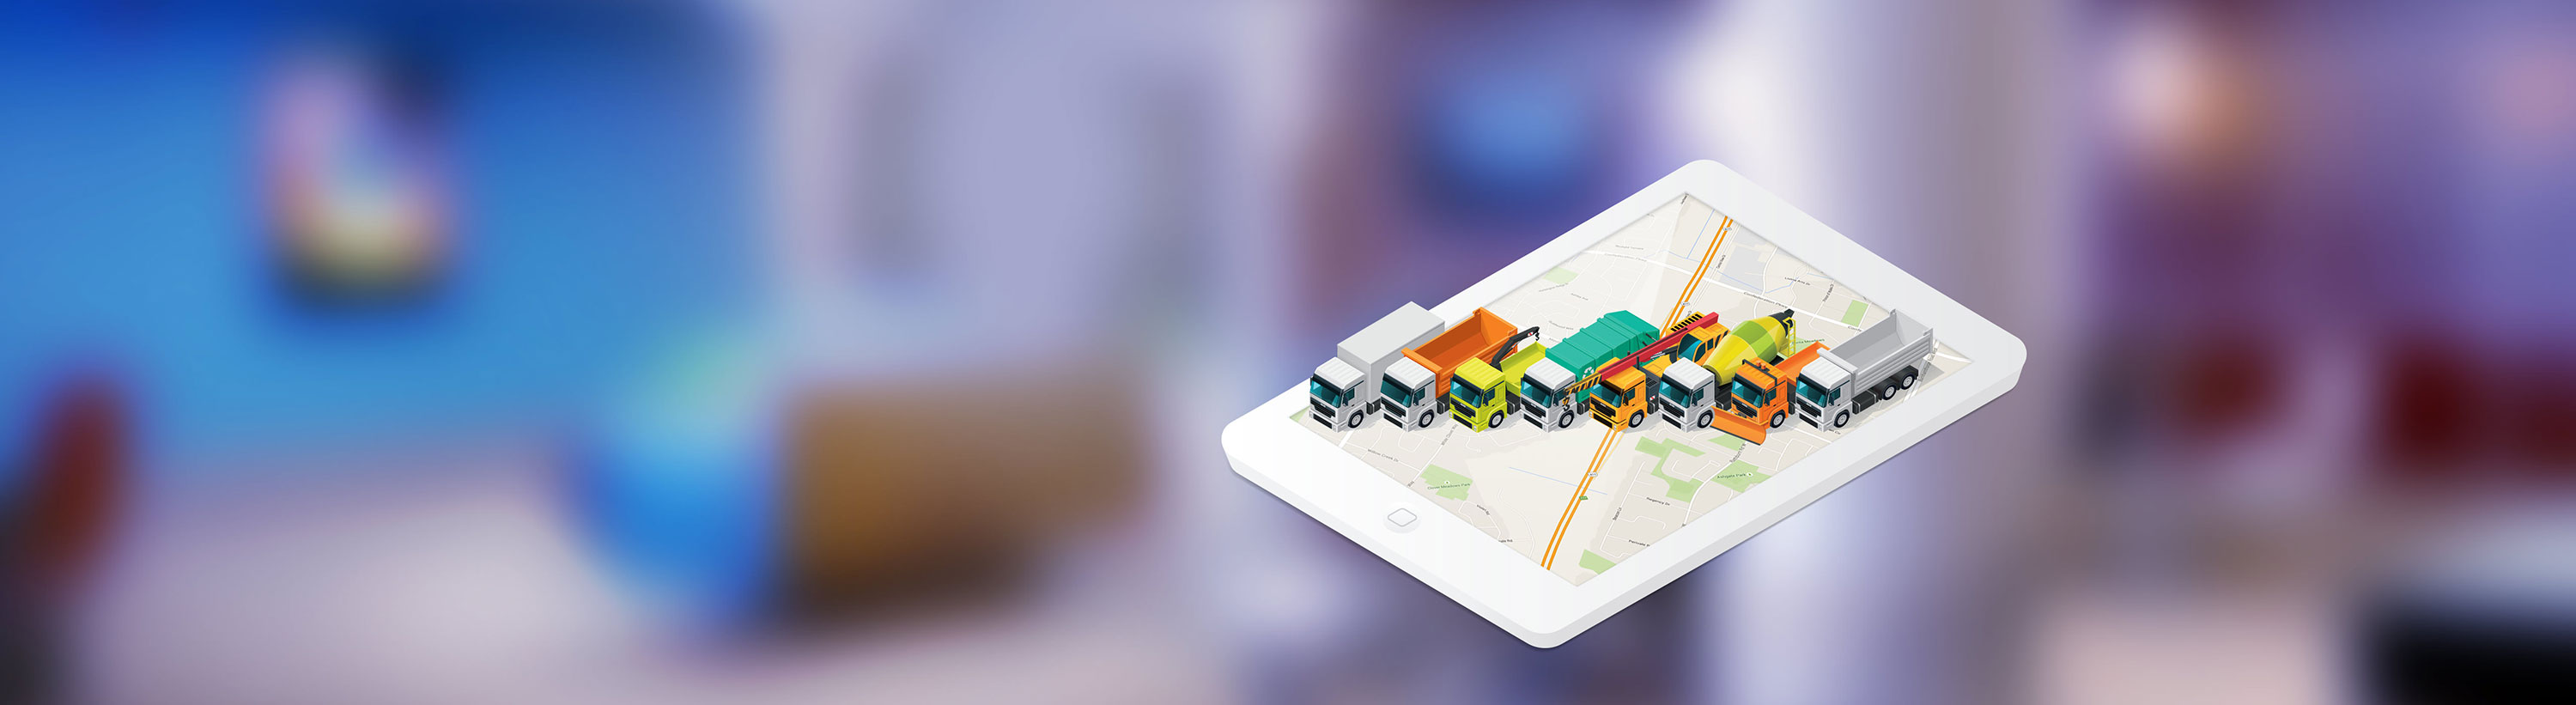 GPS Fleet Tracking Hardware and Software